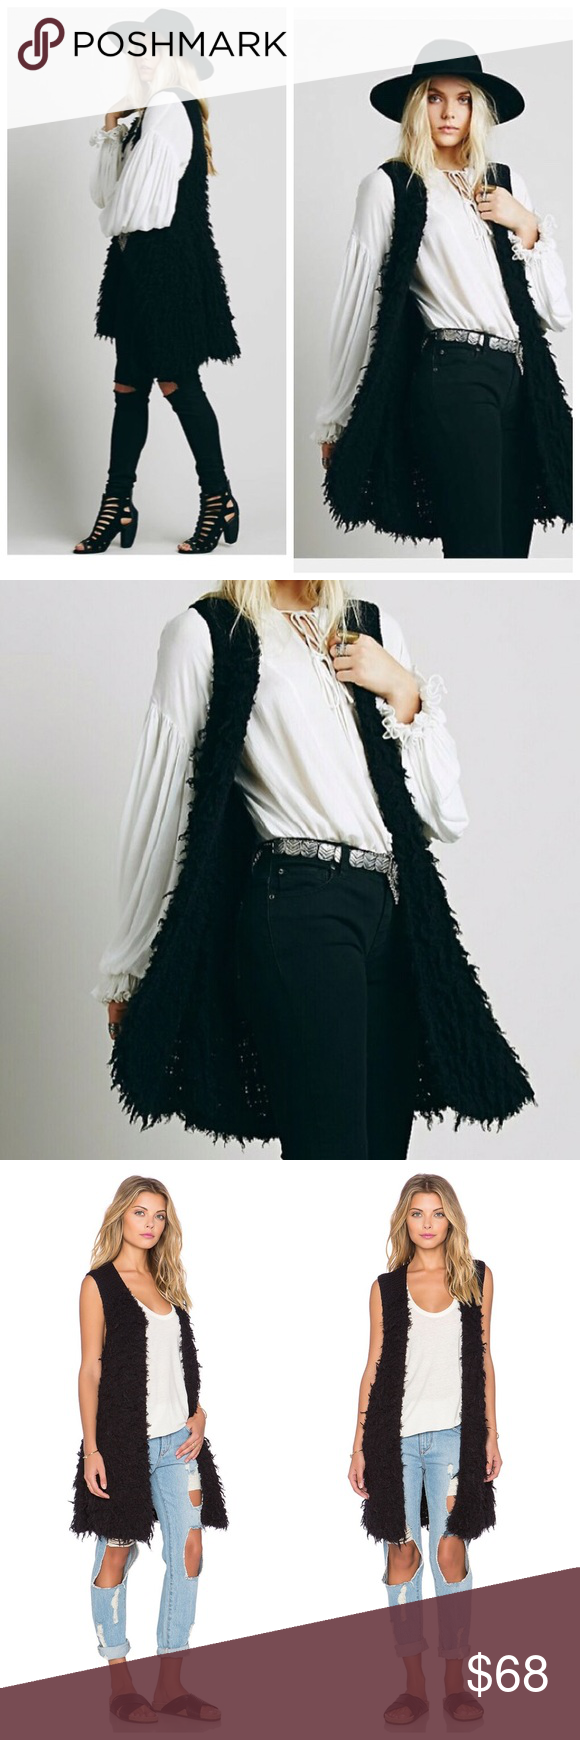 "NWT Free People Rolling Stones Vest Cardigan Brand: Free People  Condition: brand new with tags attached Size: large- this can fit all sizes depending on your desired look.  Style:sleeveless fur-like long vest Cardigan  Length: 33""  Armpit-armpit: 18.5""  Sleeves: sleeveless  Color: black  Material:cotton Care: hand wash Free People Sweaters Cardigans"